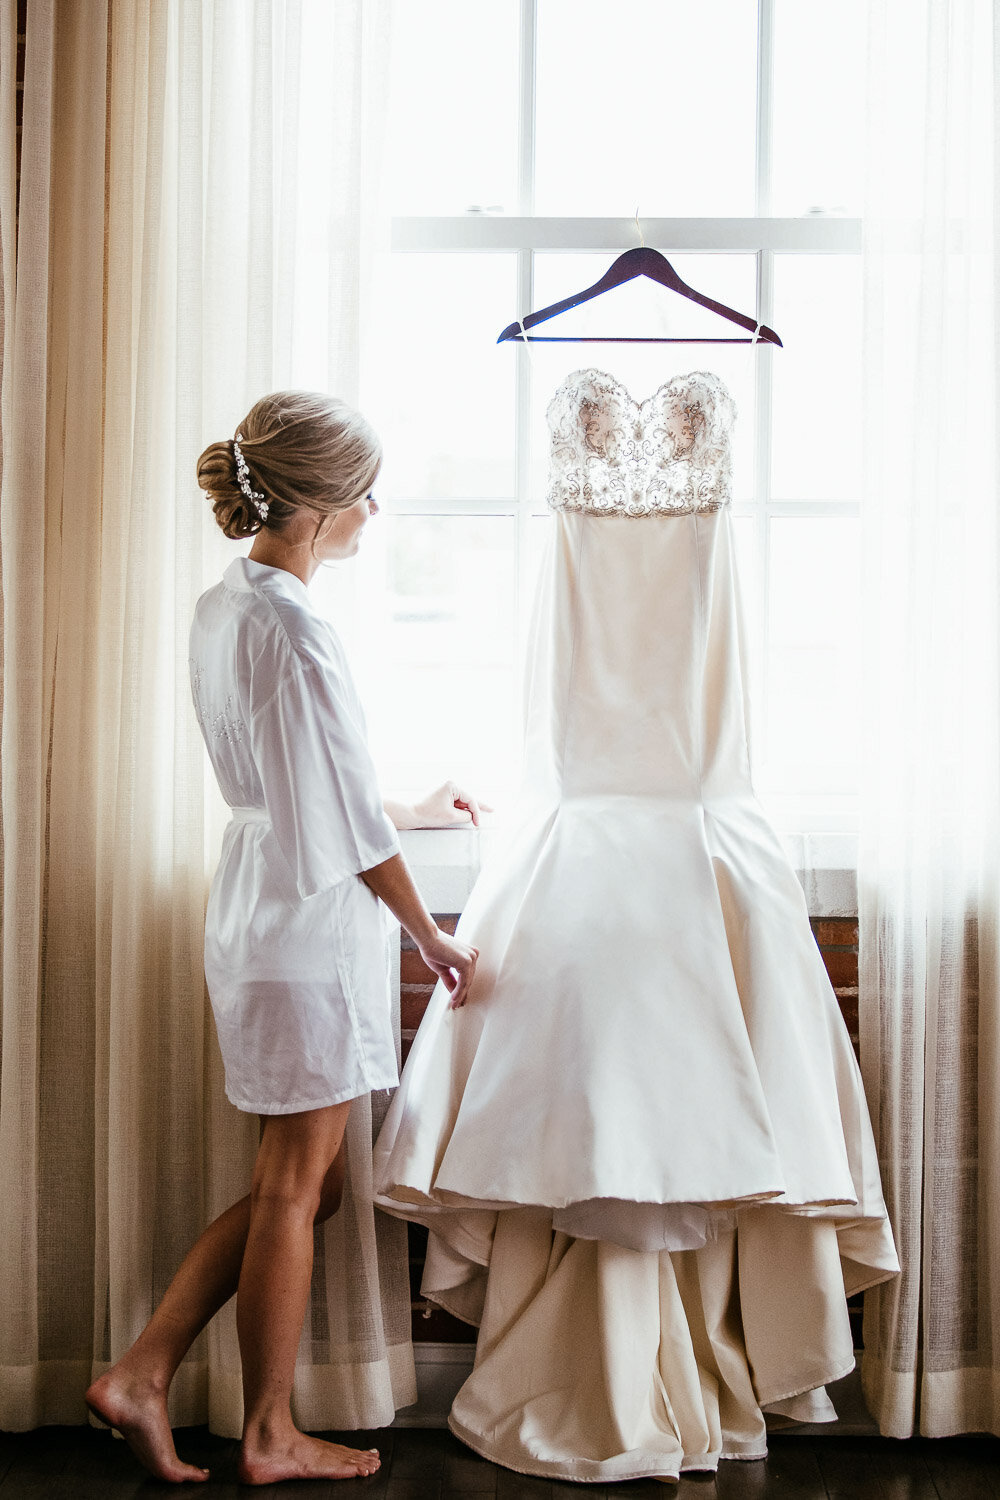 Bride looking at her hung up wedding dress